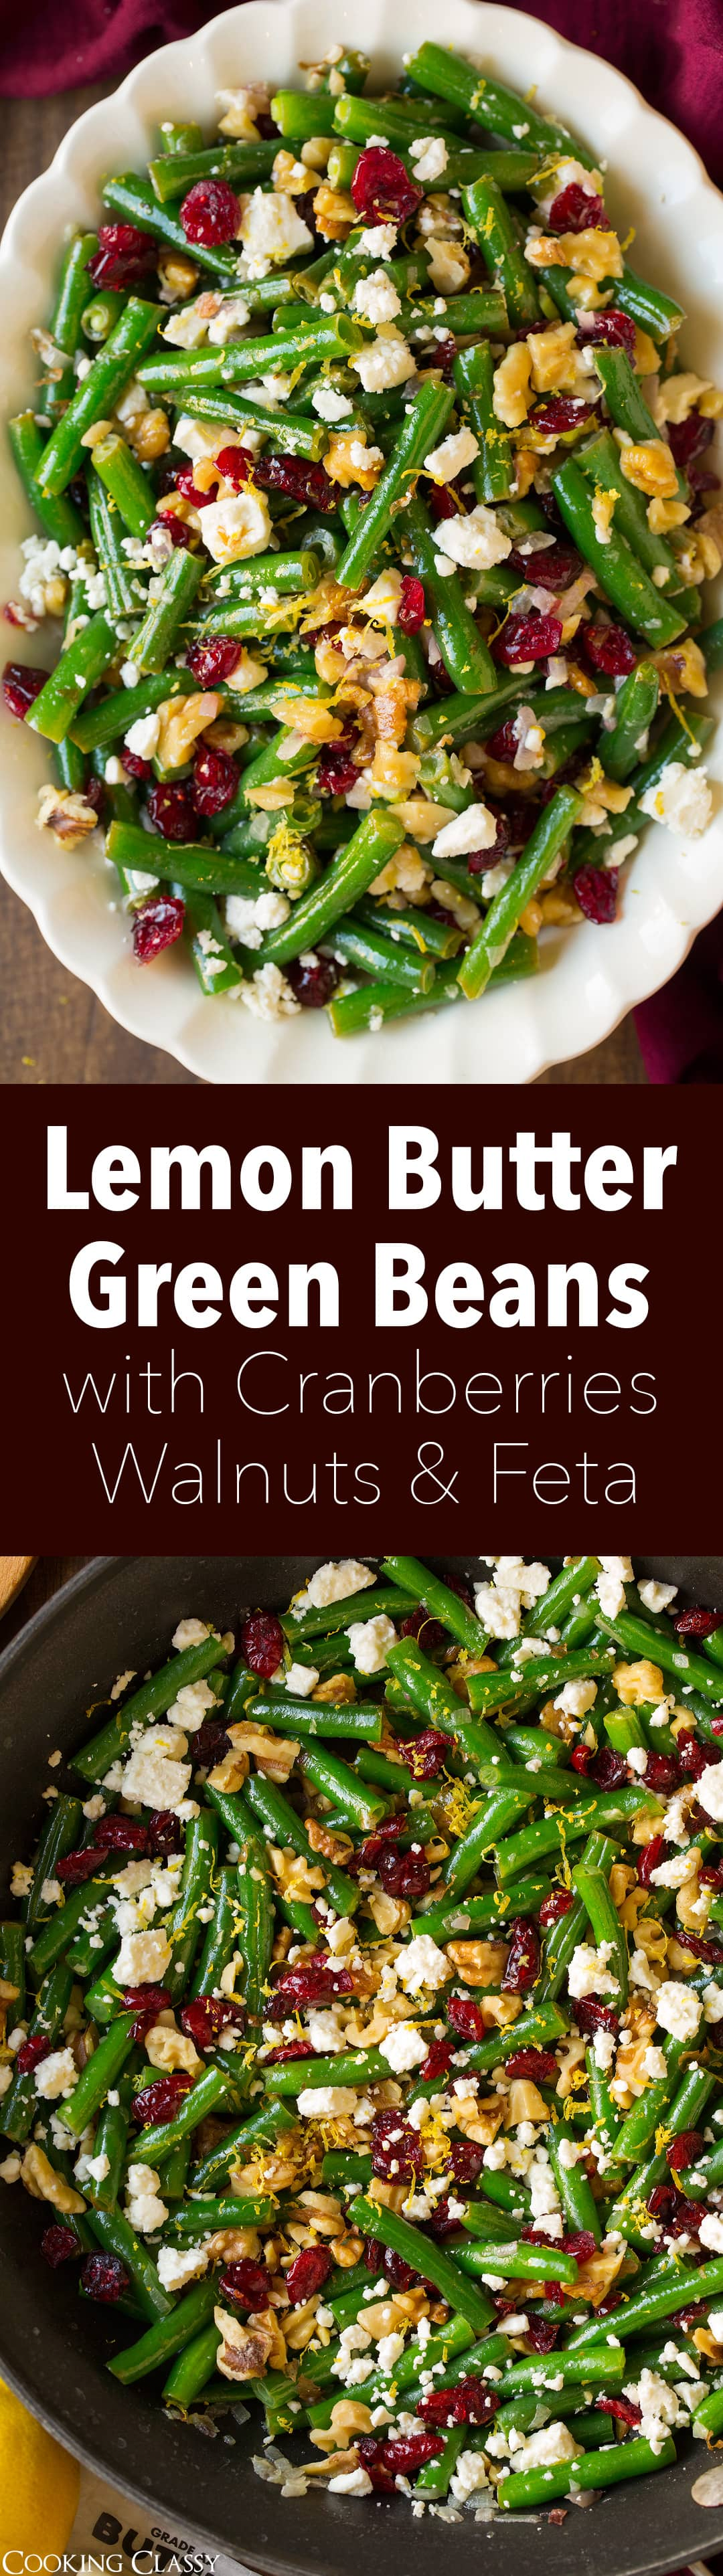 Lemon Butter Green Beans with Cranberries Walnuts and Feta - such a delicious side dish! Love the flavor, love the textures and love the colors!